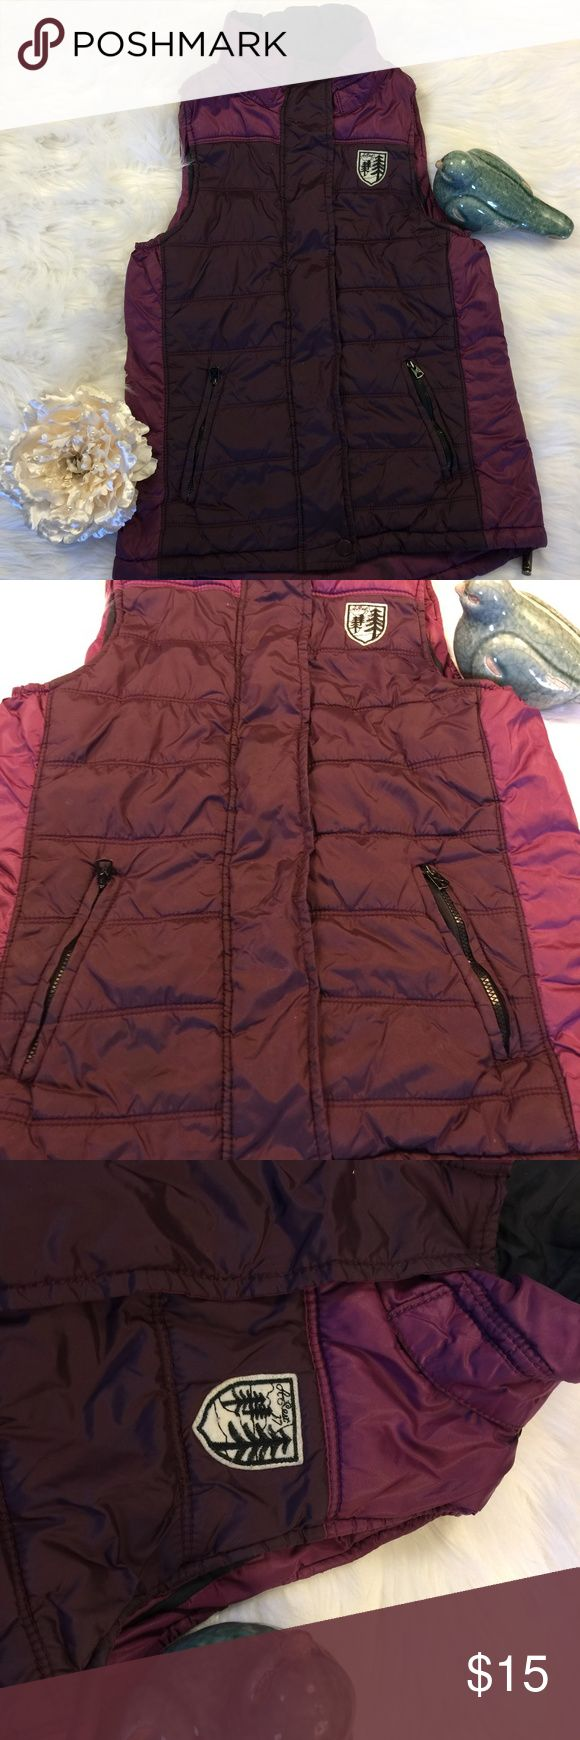 Women's American Eagle Outfitters XS Purple Vest Women's American Eagle Outfitters XS Purple Vest - Women's - Brand: American Eagle -Colors : Multi-Purple - Size : Extra Small - Condition : Excellent - (Hanger hook is worn - please view pictures) - I Ship Daily! American Eagle Outfitters Jackets & Coats Vests